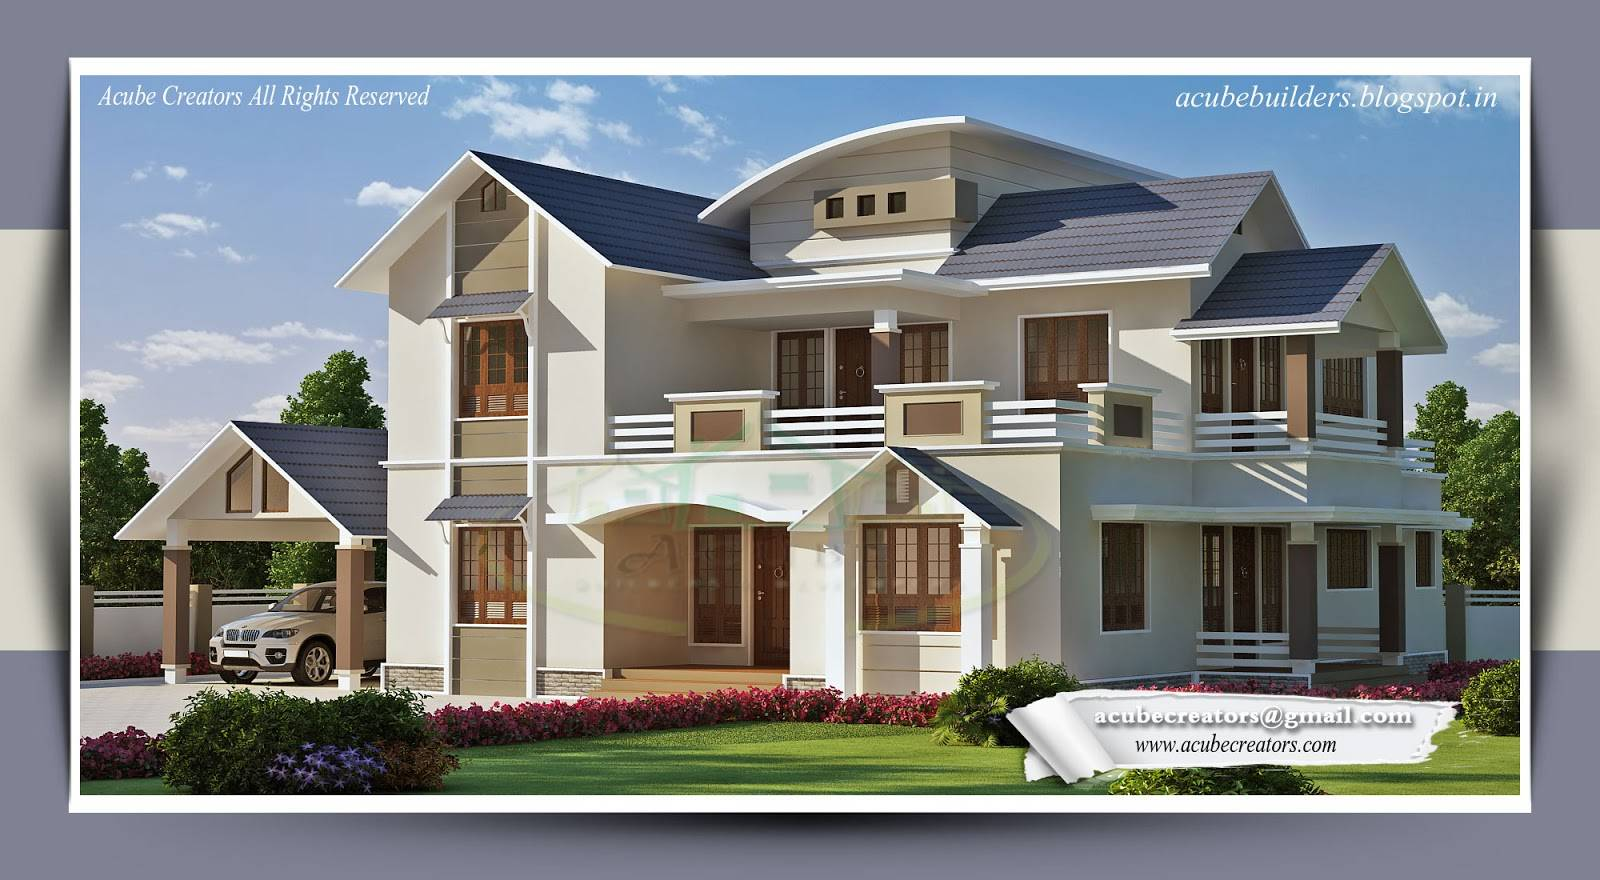 Luxurious Bungalow House Plans